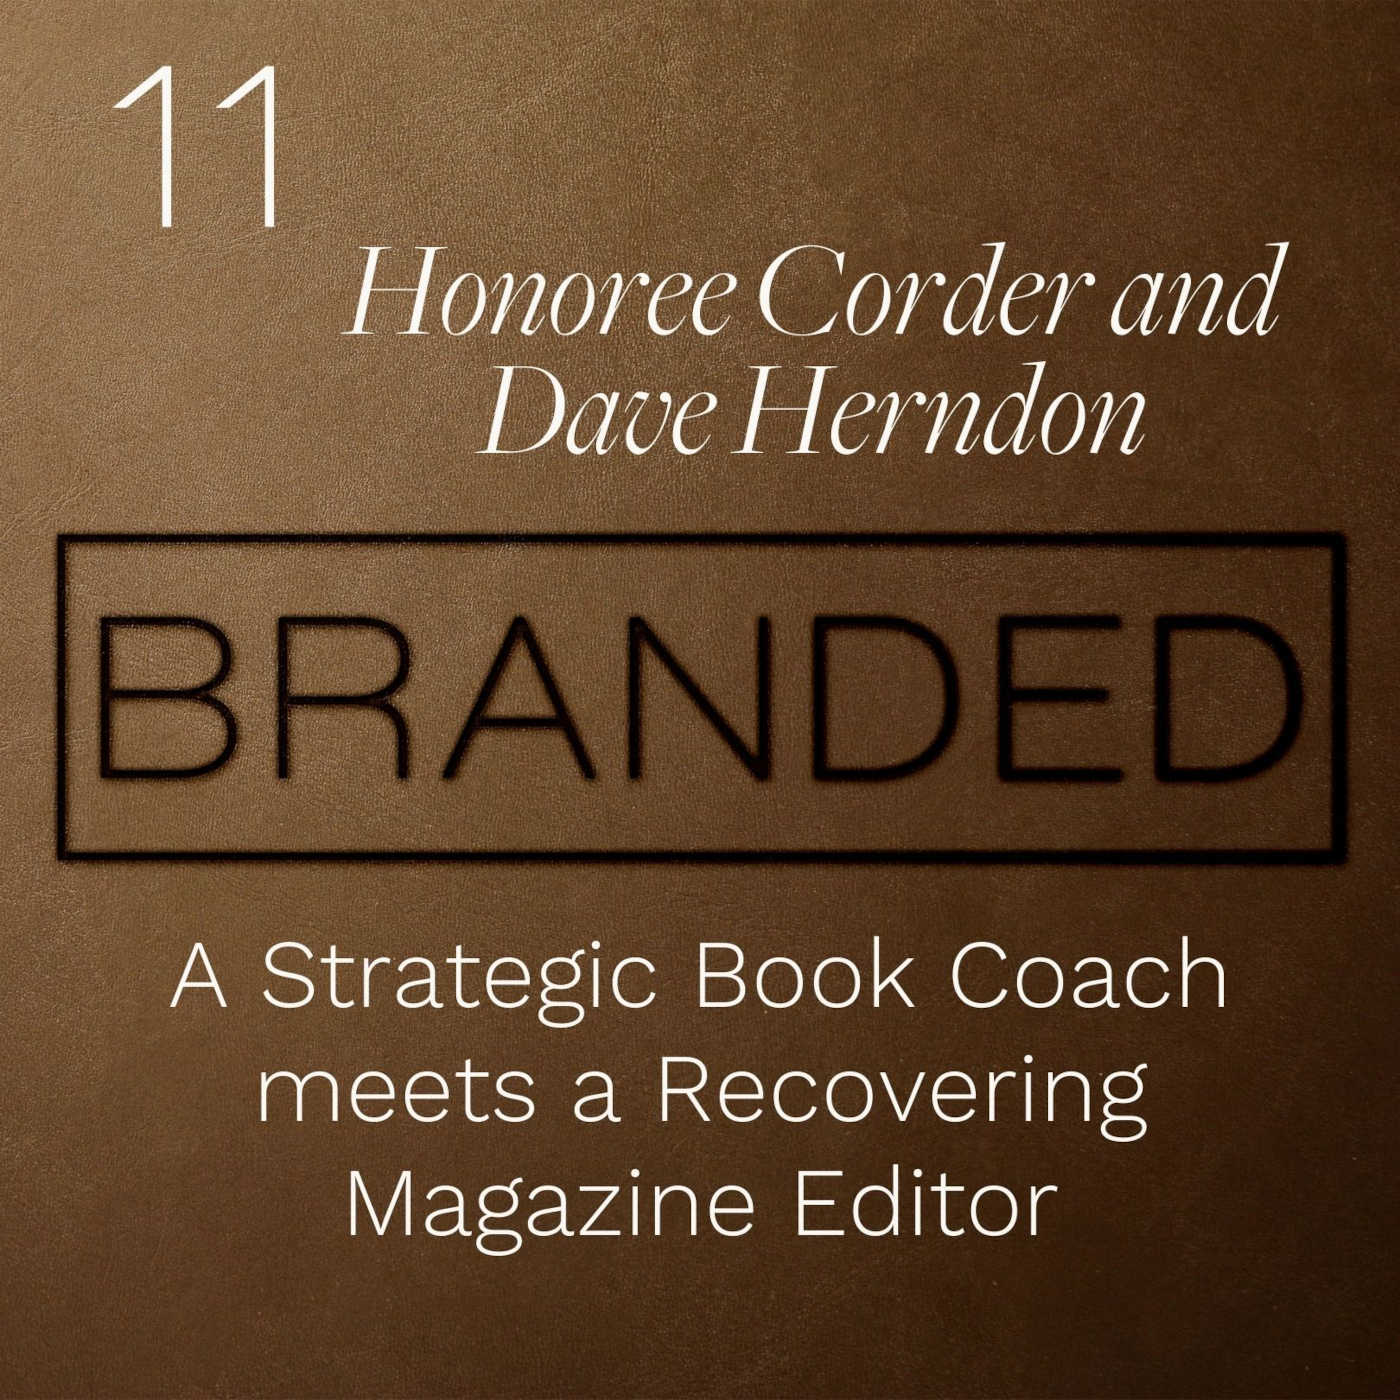 011 A Strategic Book Coach meets a Recovering Magazine Editor